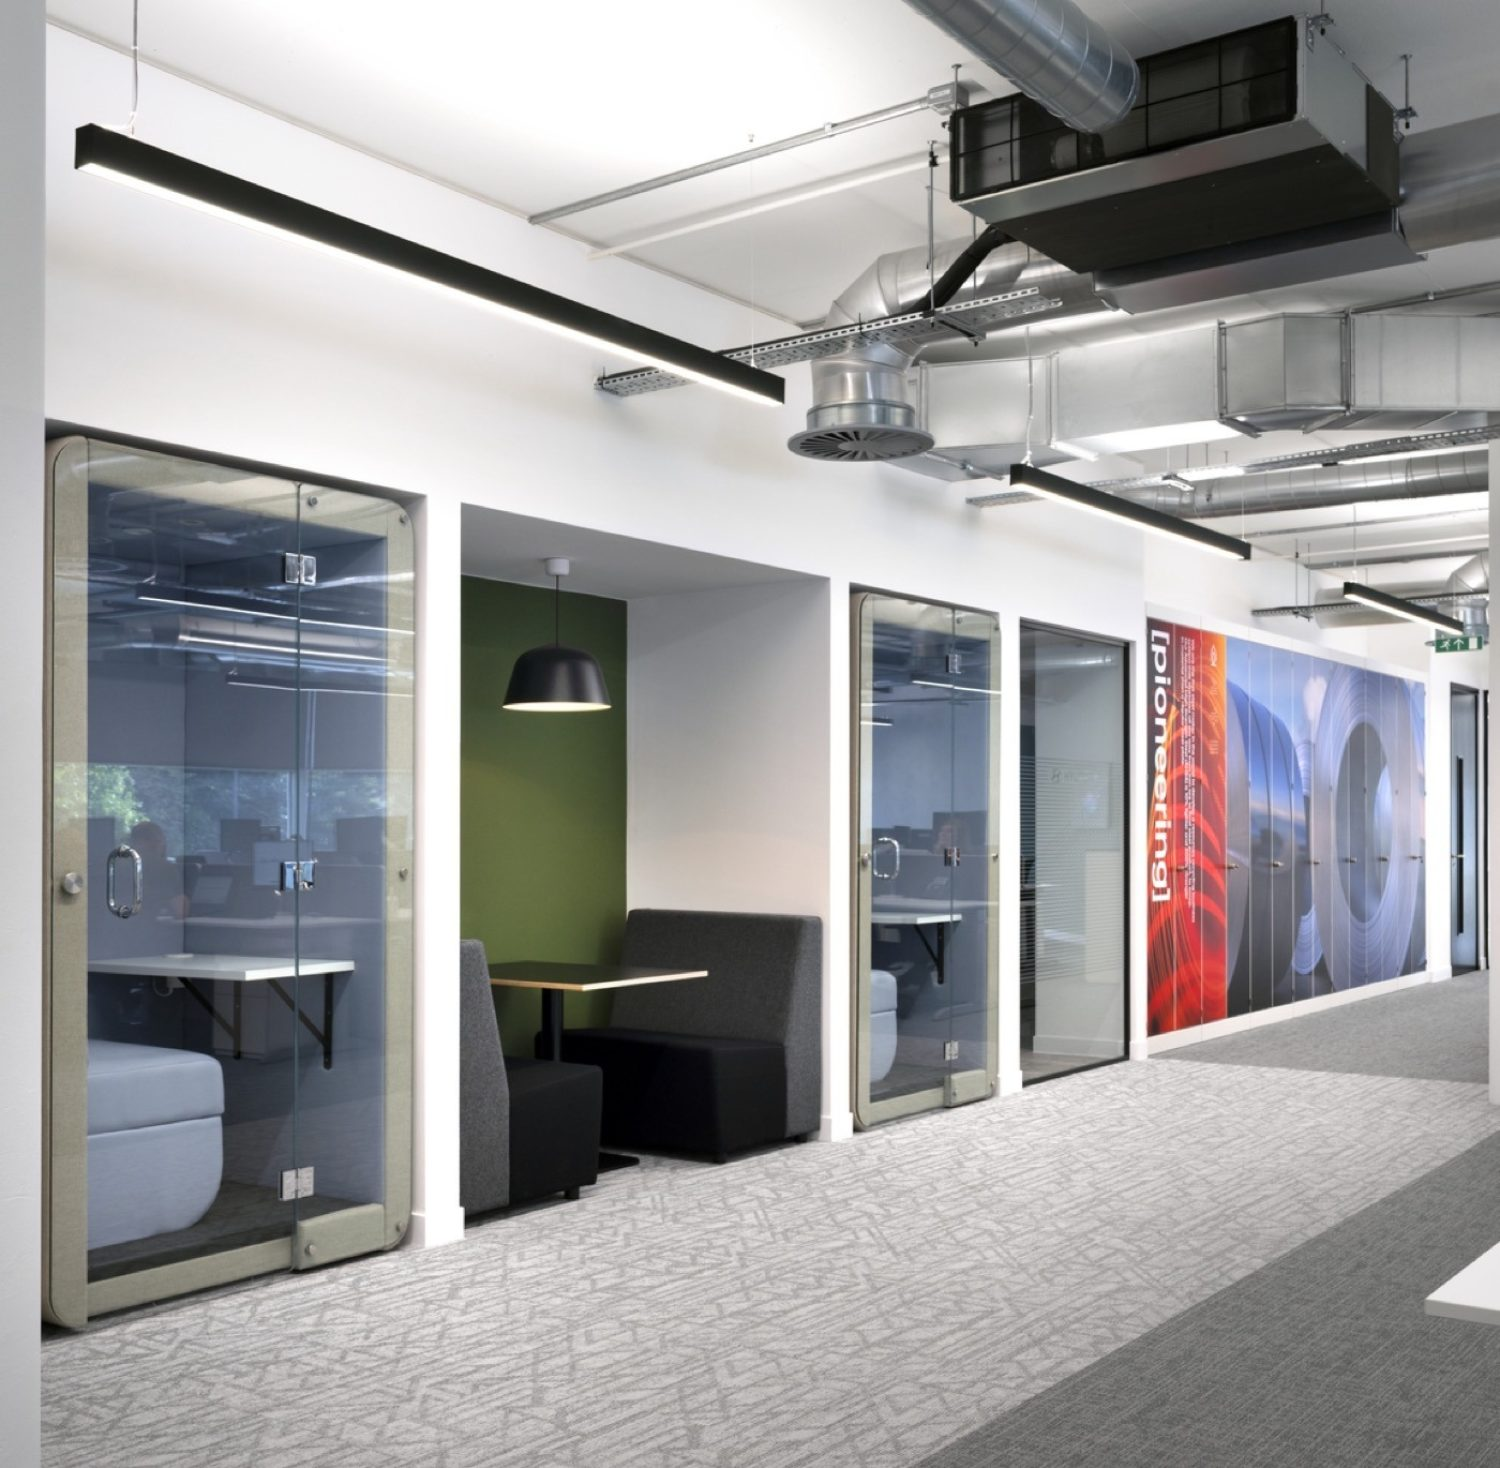 Hyundai office fit out exposed services